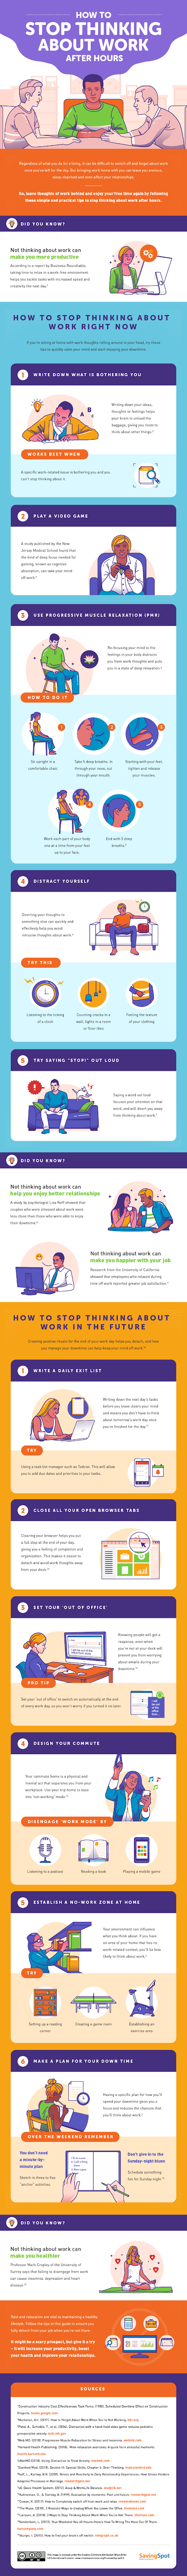 How to Stop Thinking About Work After Hours #infographic